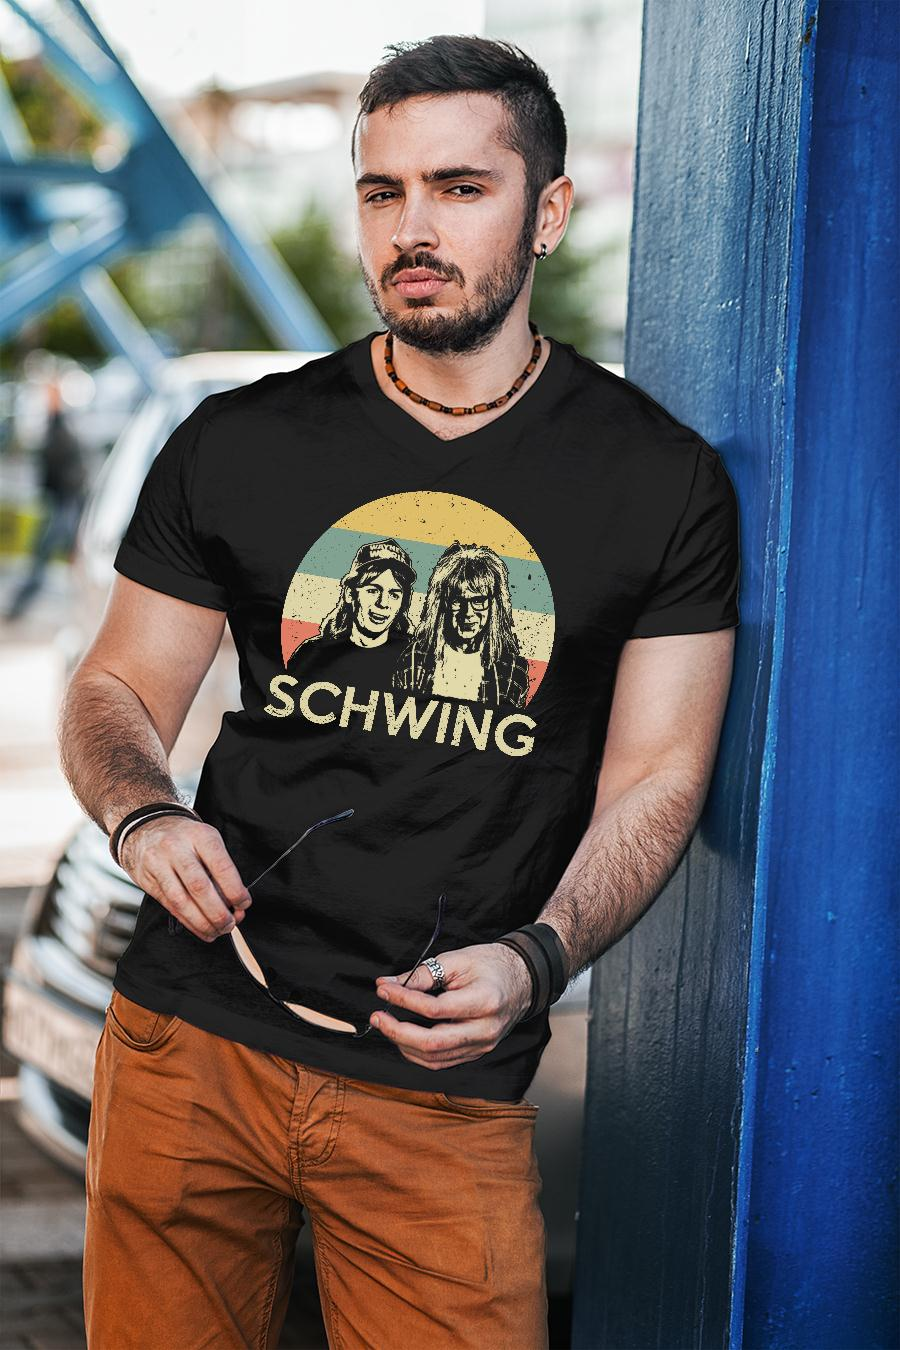 Wayne campbell and Garth algar Schwing shirt unisex